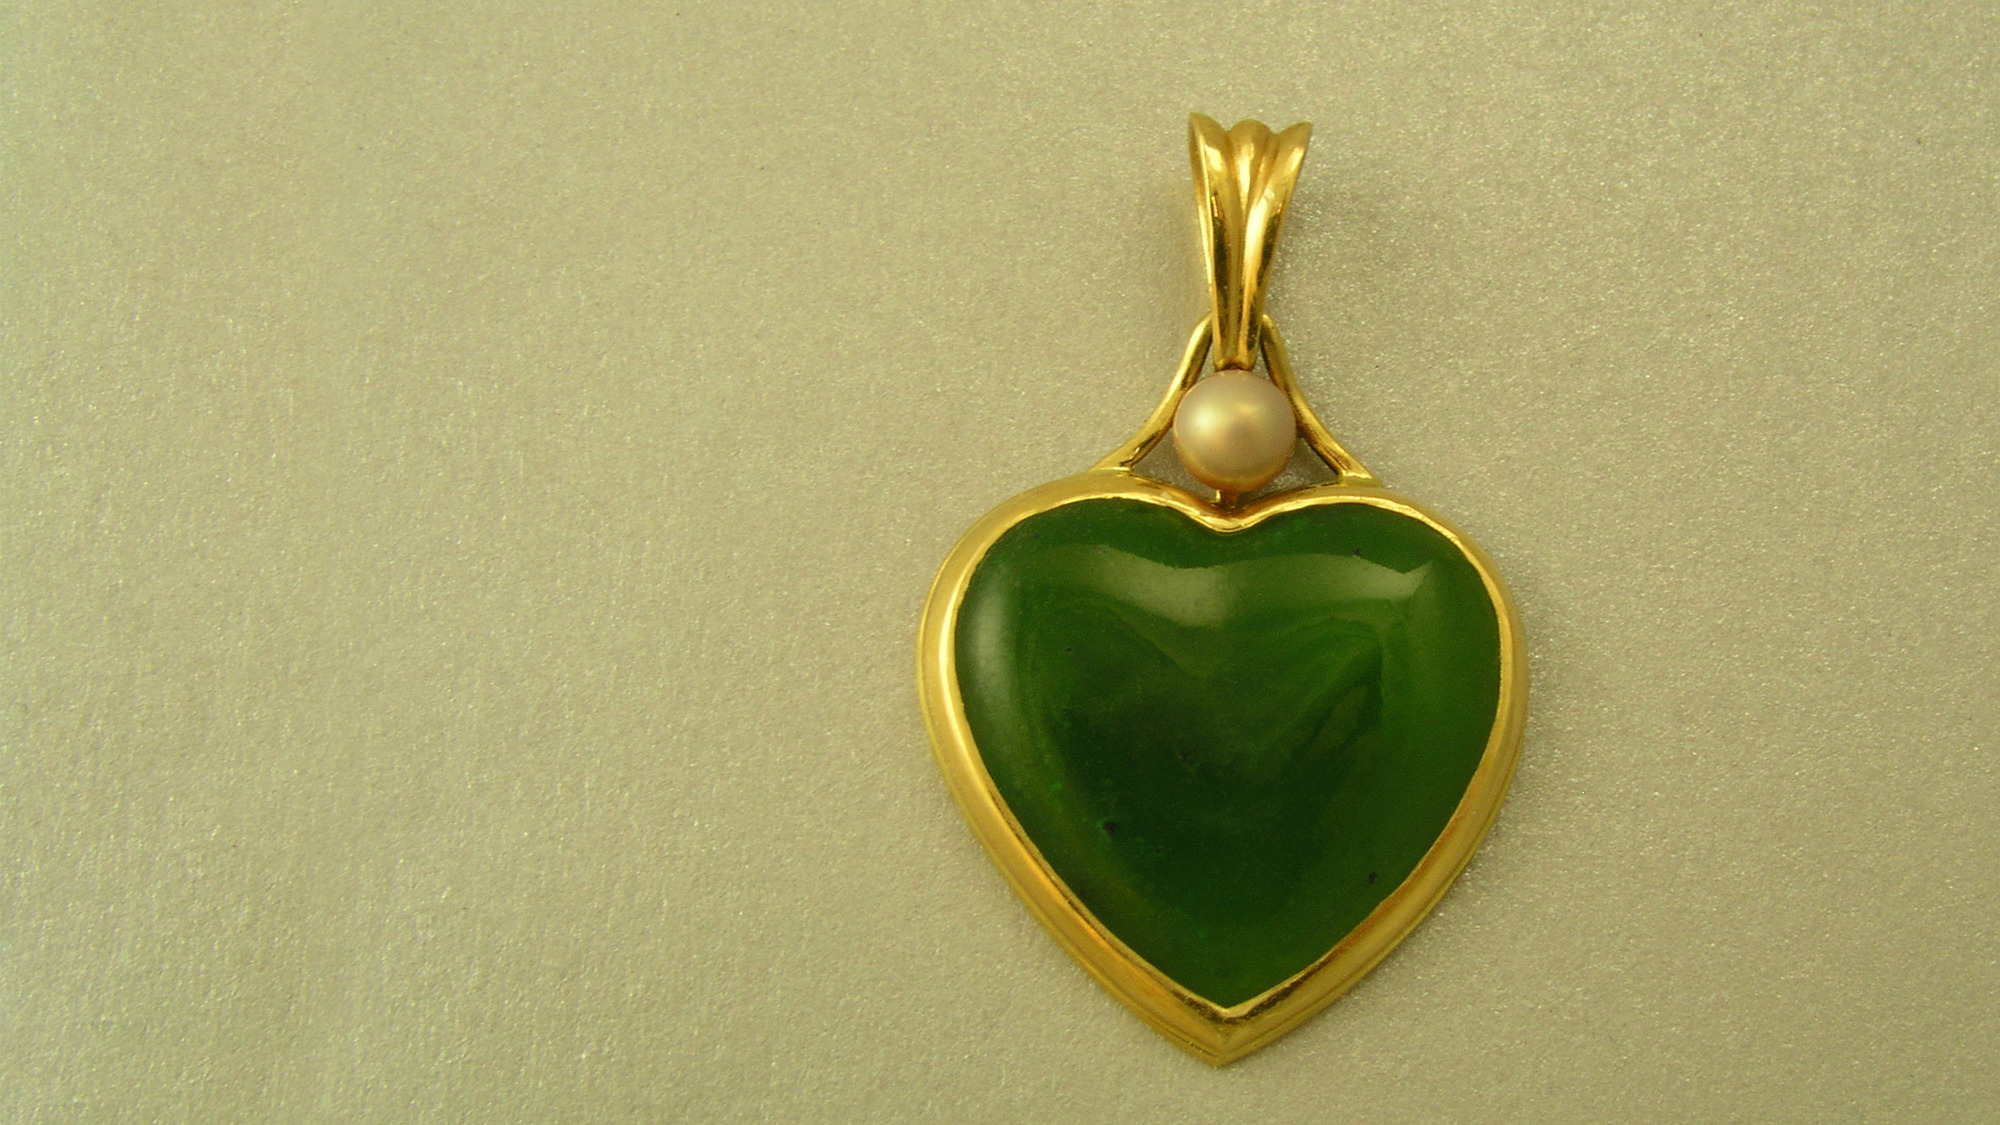 James lynn goldsmith image196 gallery spiritual and back jade heart pendant mozeypictures Choice Image